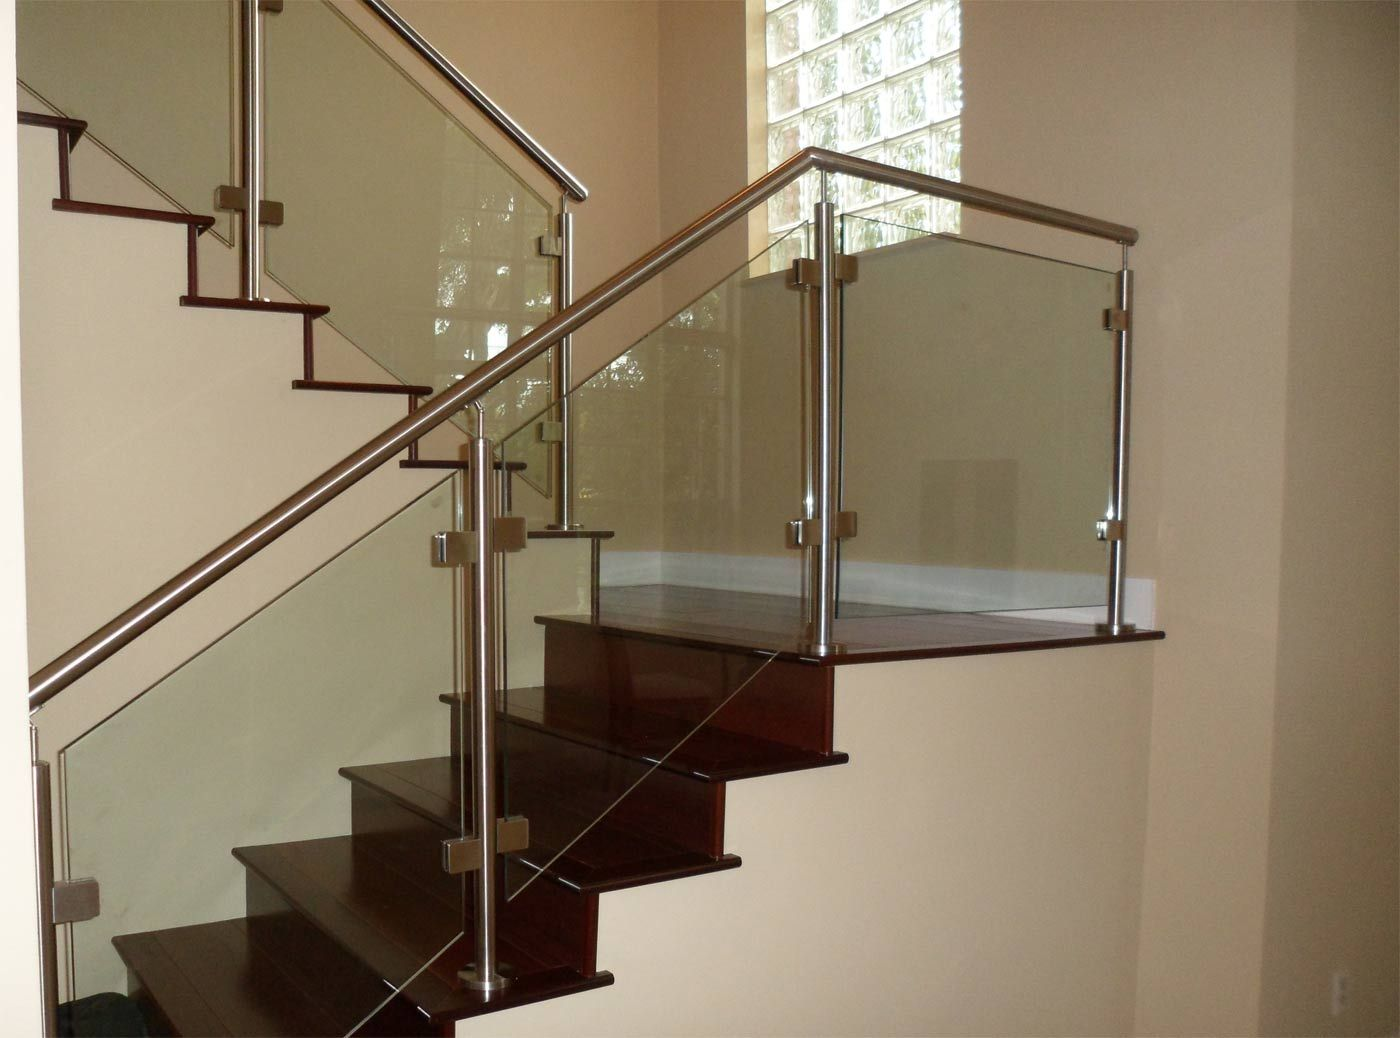 Cute Miami Stairs Glass Railings Stainless Railings Wood Railings